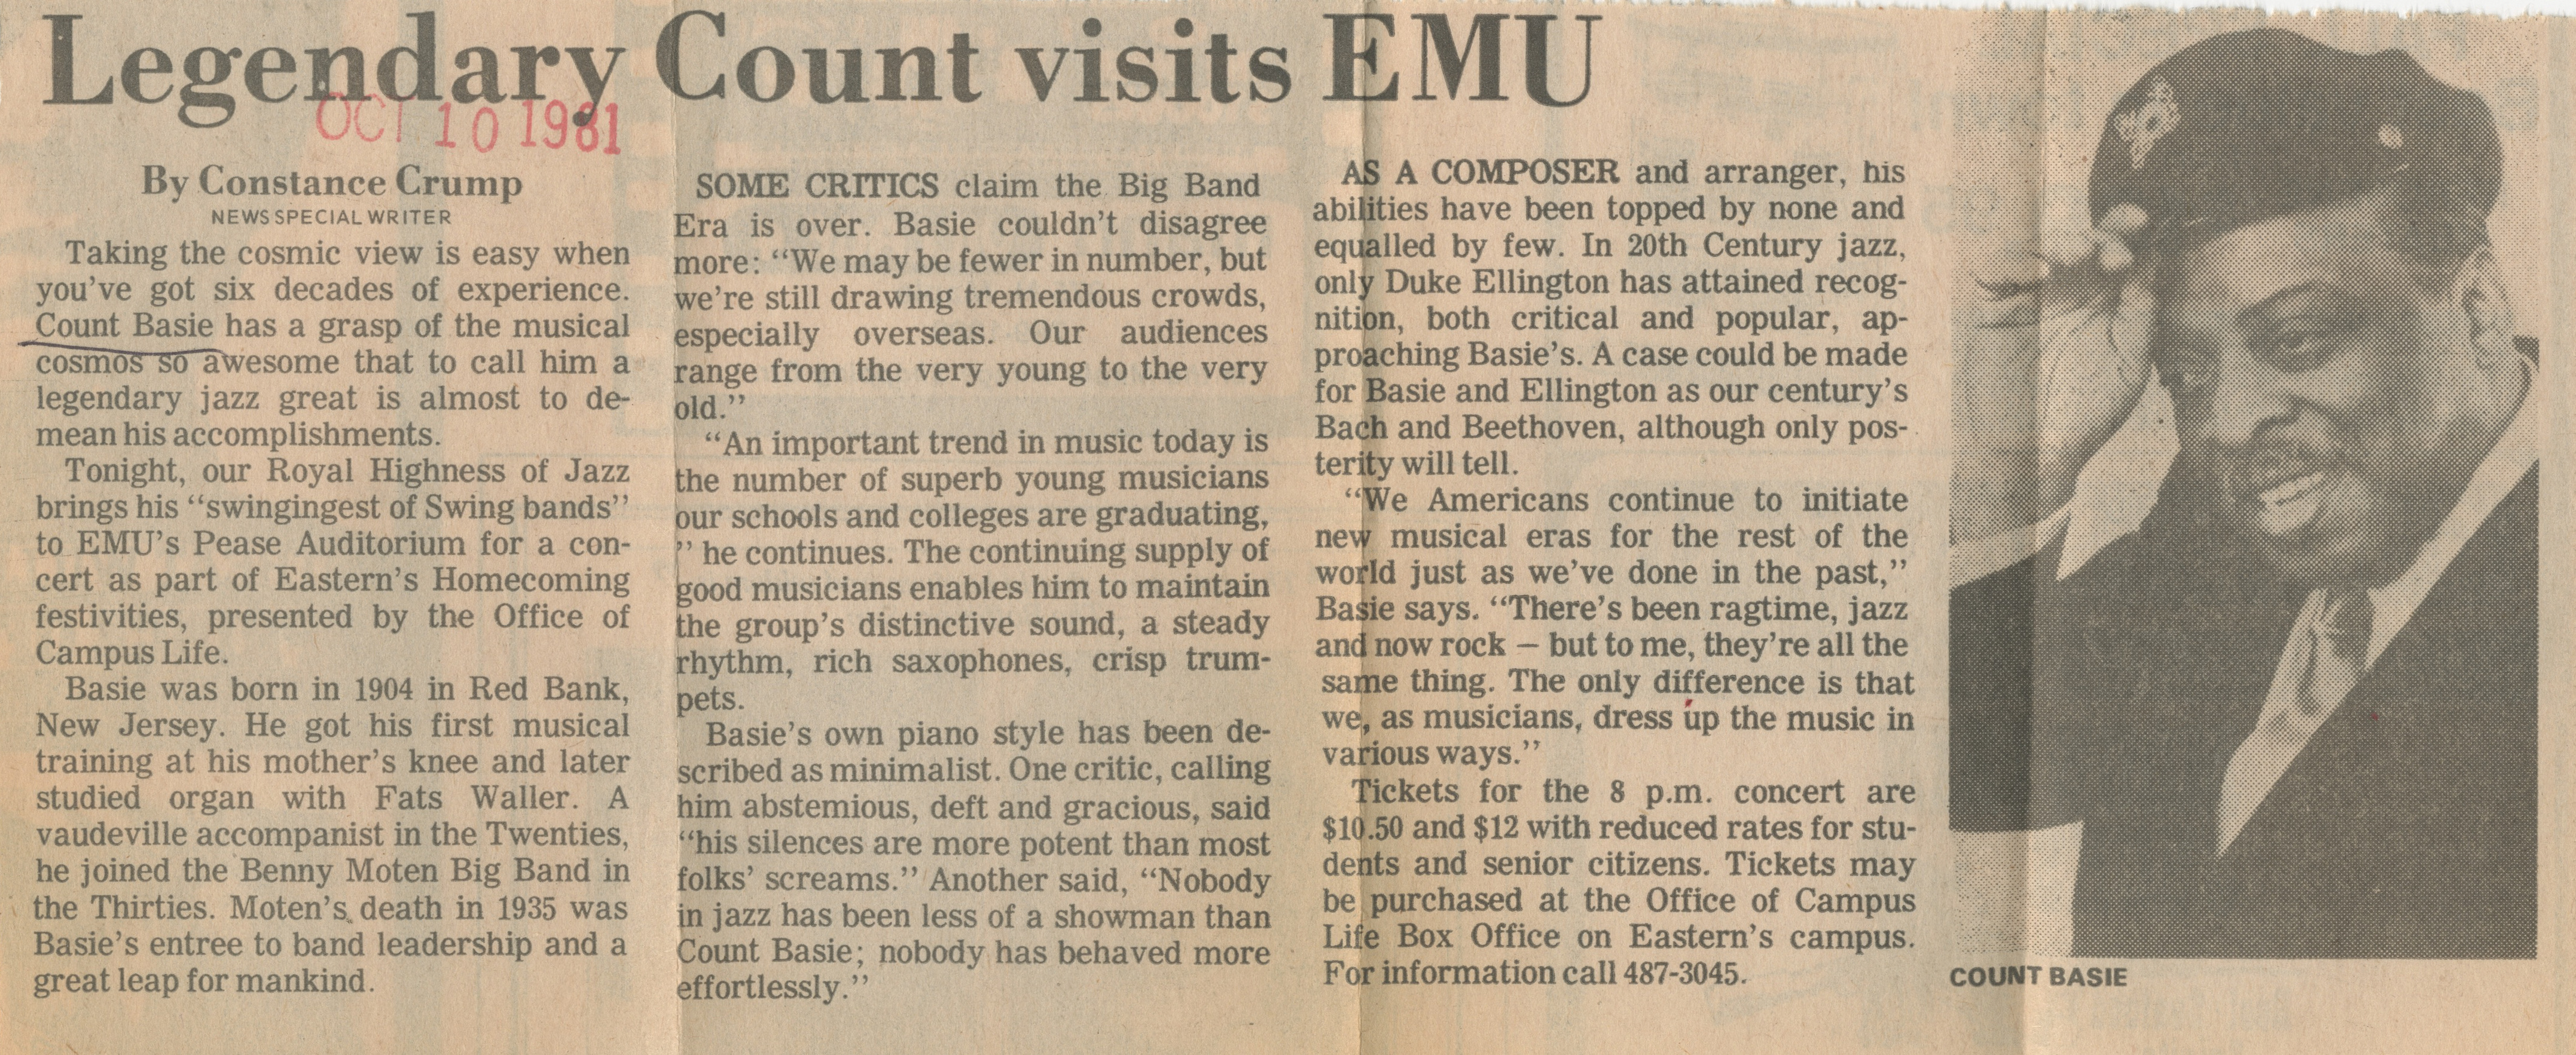 Legendary Count Visits EMU image